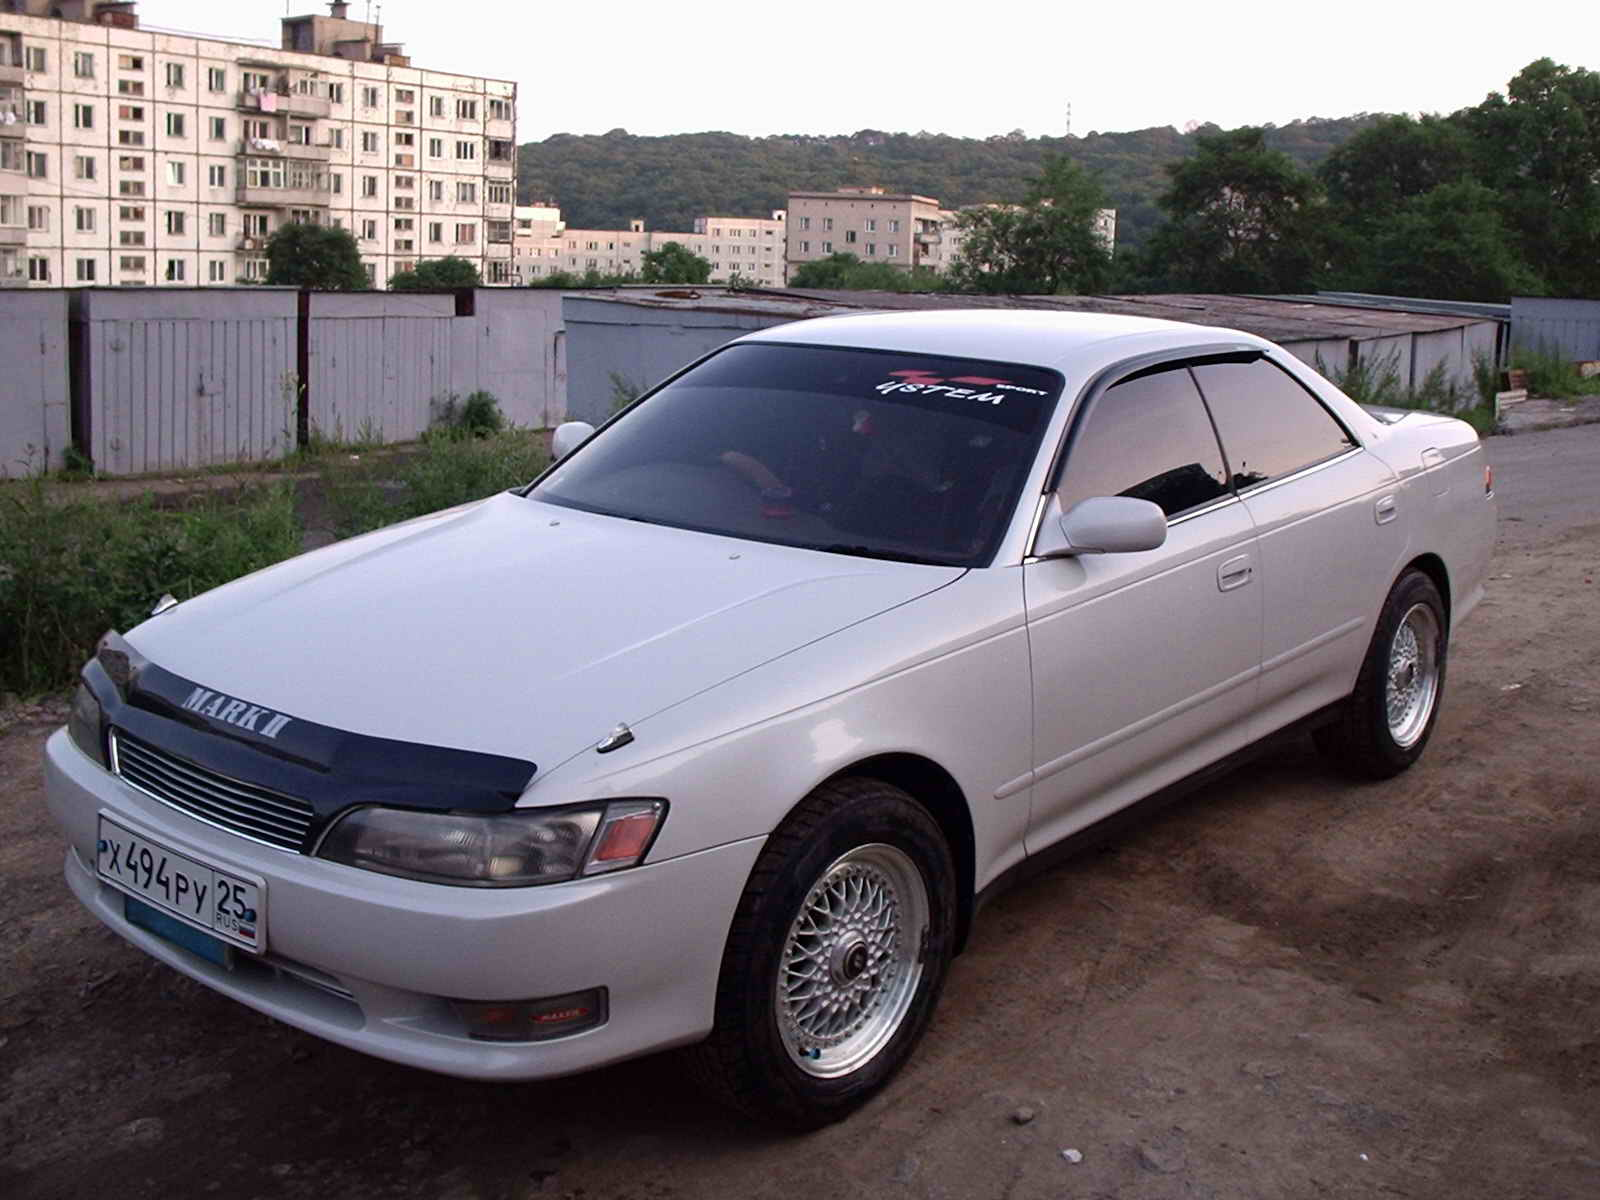 1993 toyota mark ii pictures 2000cc gasoline fr or rr automatic for sale. Black Bedroom Furniture Sets. Home Design Ideas